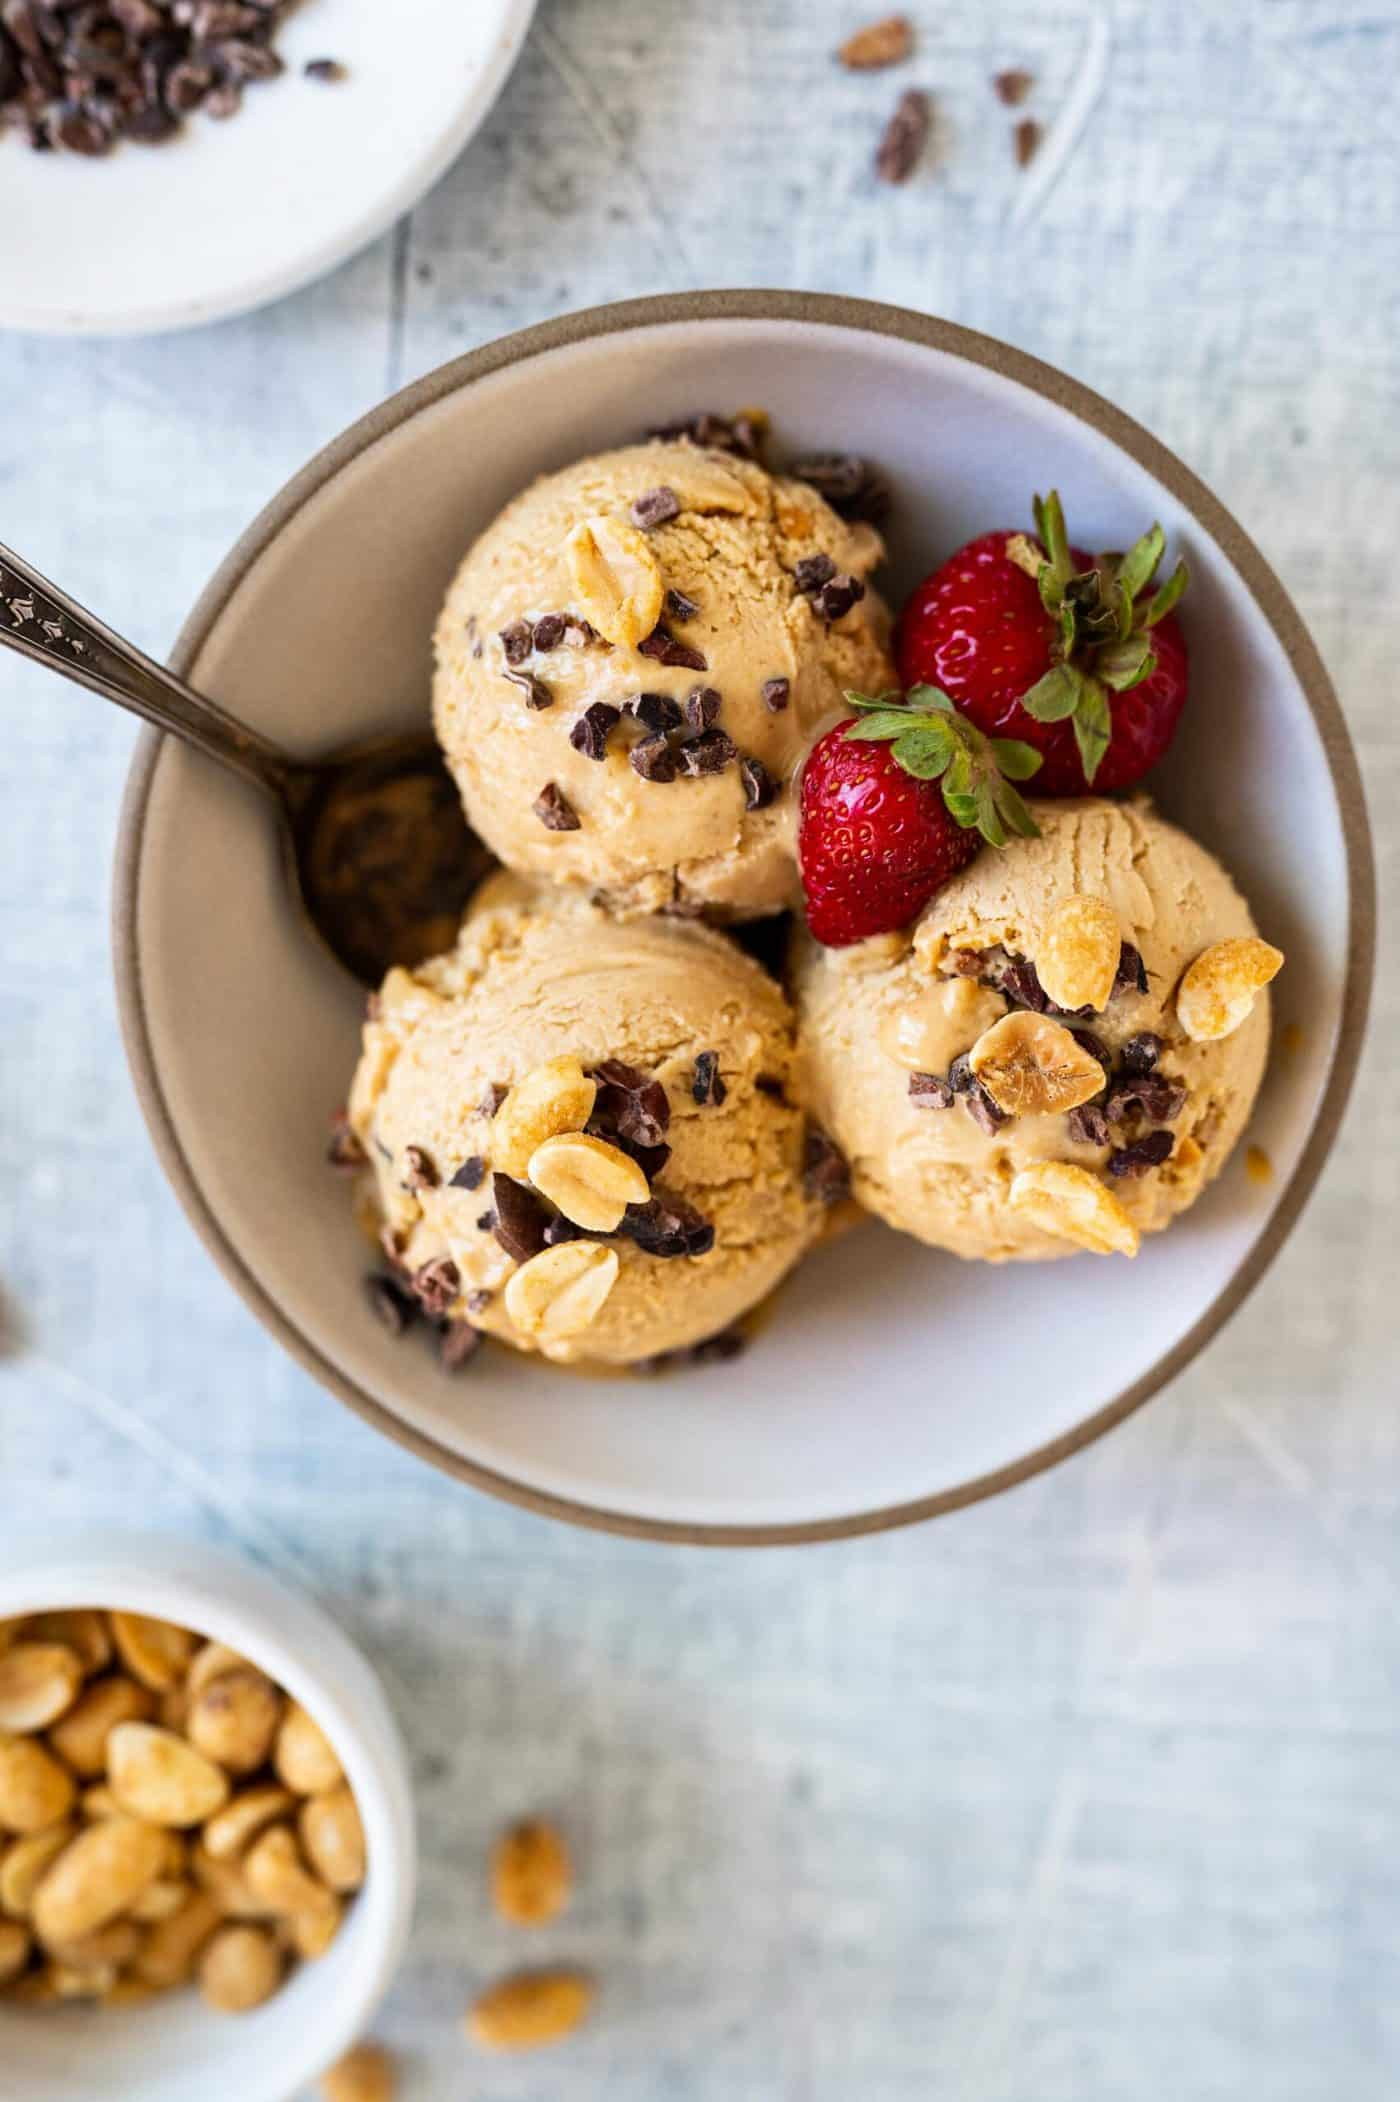 Almost Vegan Peanut Butter Ice Cream Recipe via thepigandquill.com #dairyfree #eggfree #plantbased